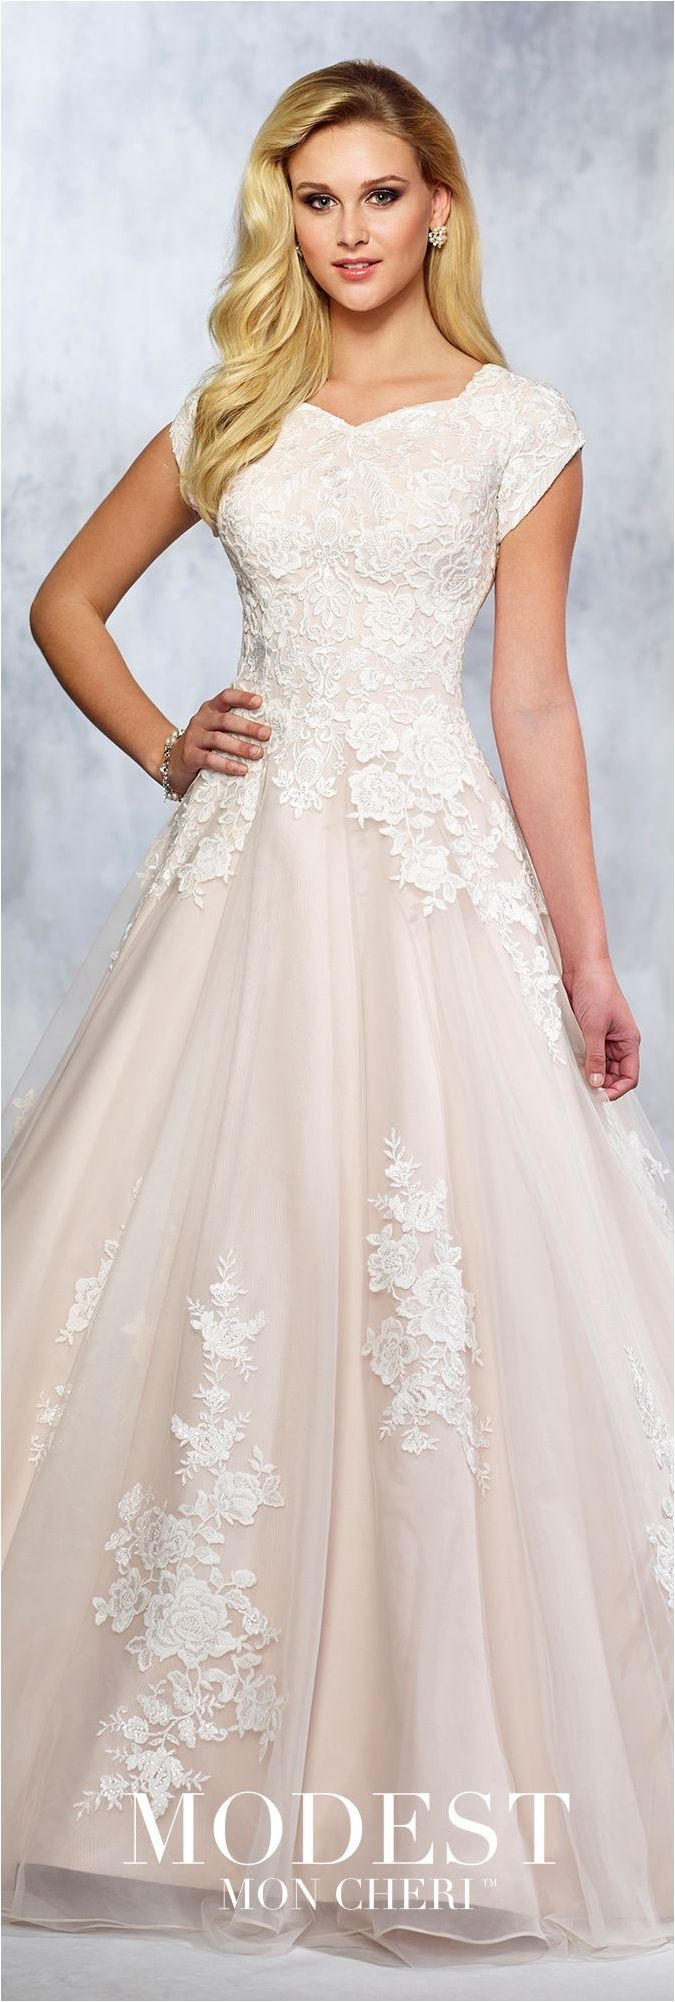 Wedding dresses simple uncover your perfect bridal gown out from